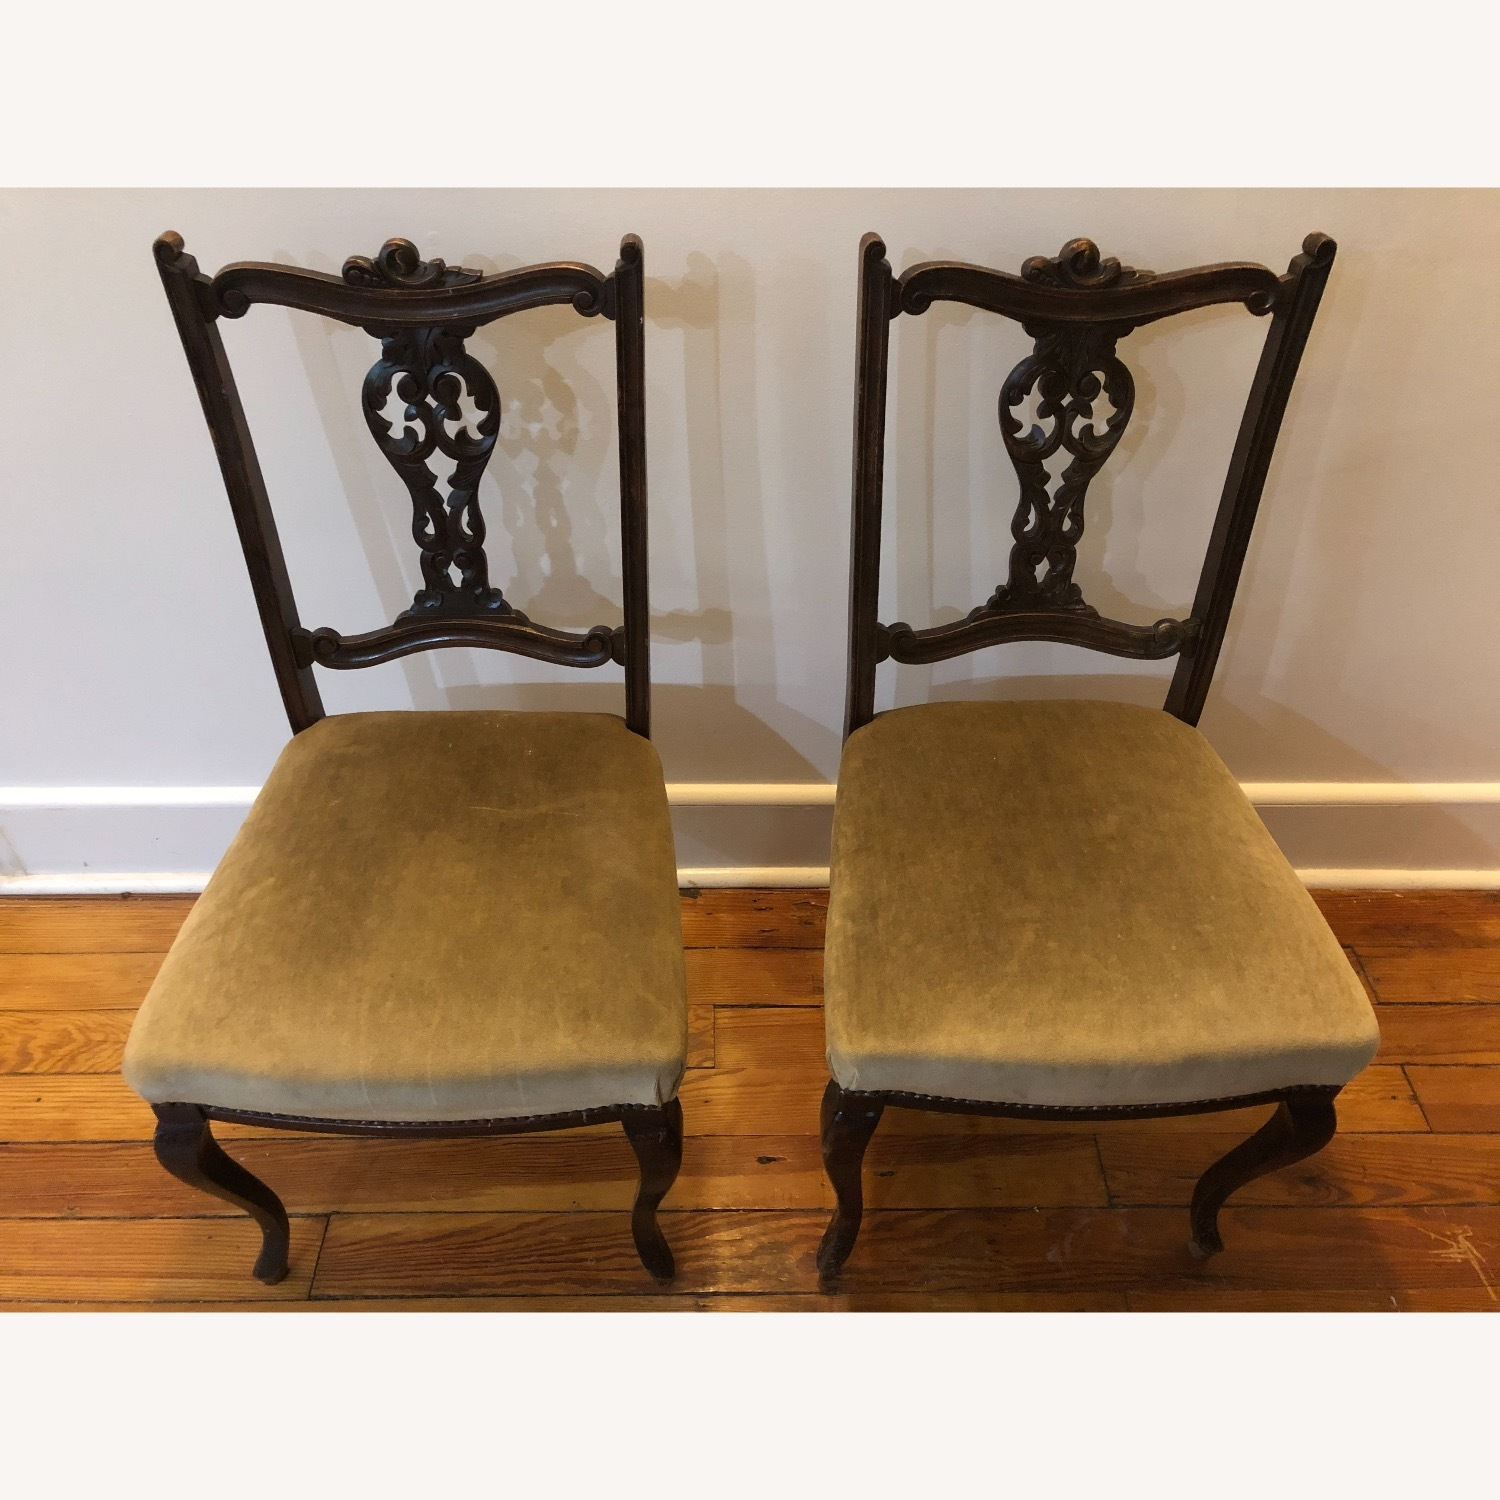 Victorian Accent Chairs - image-8